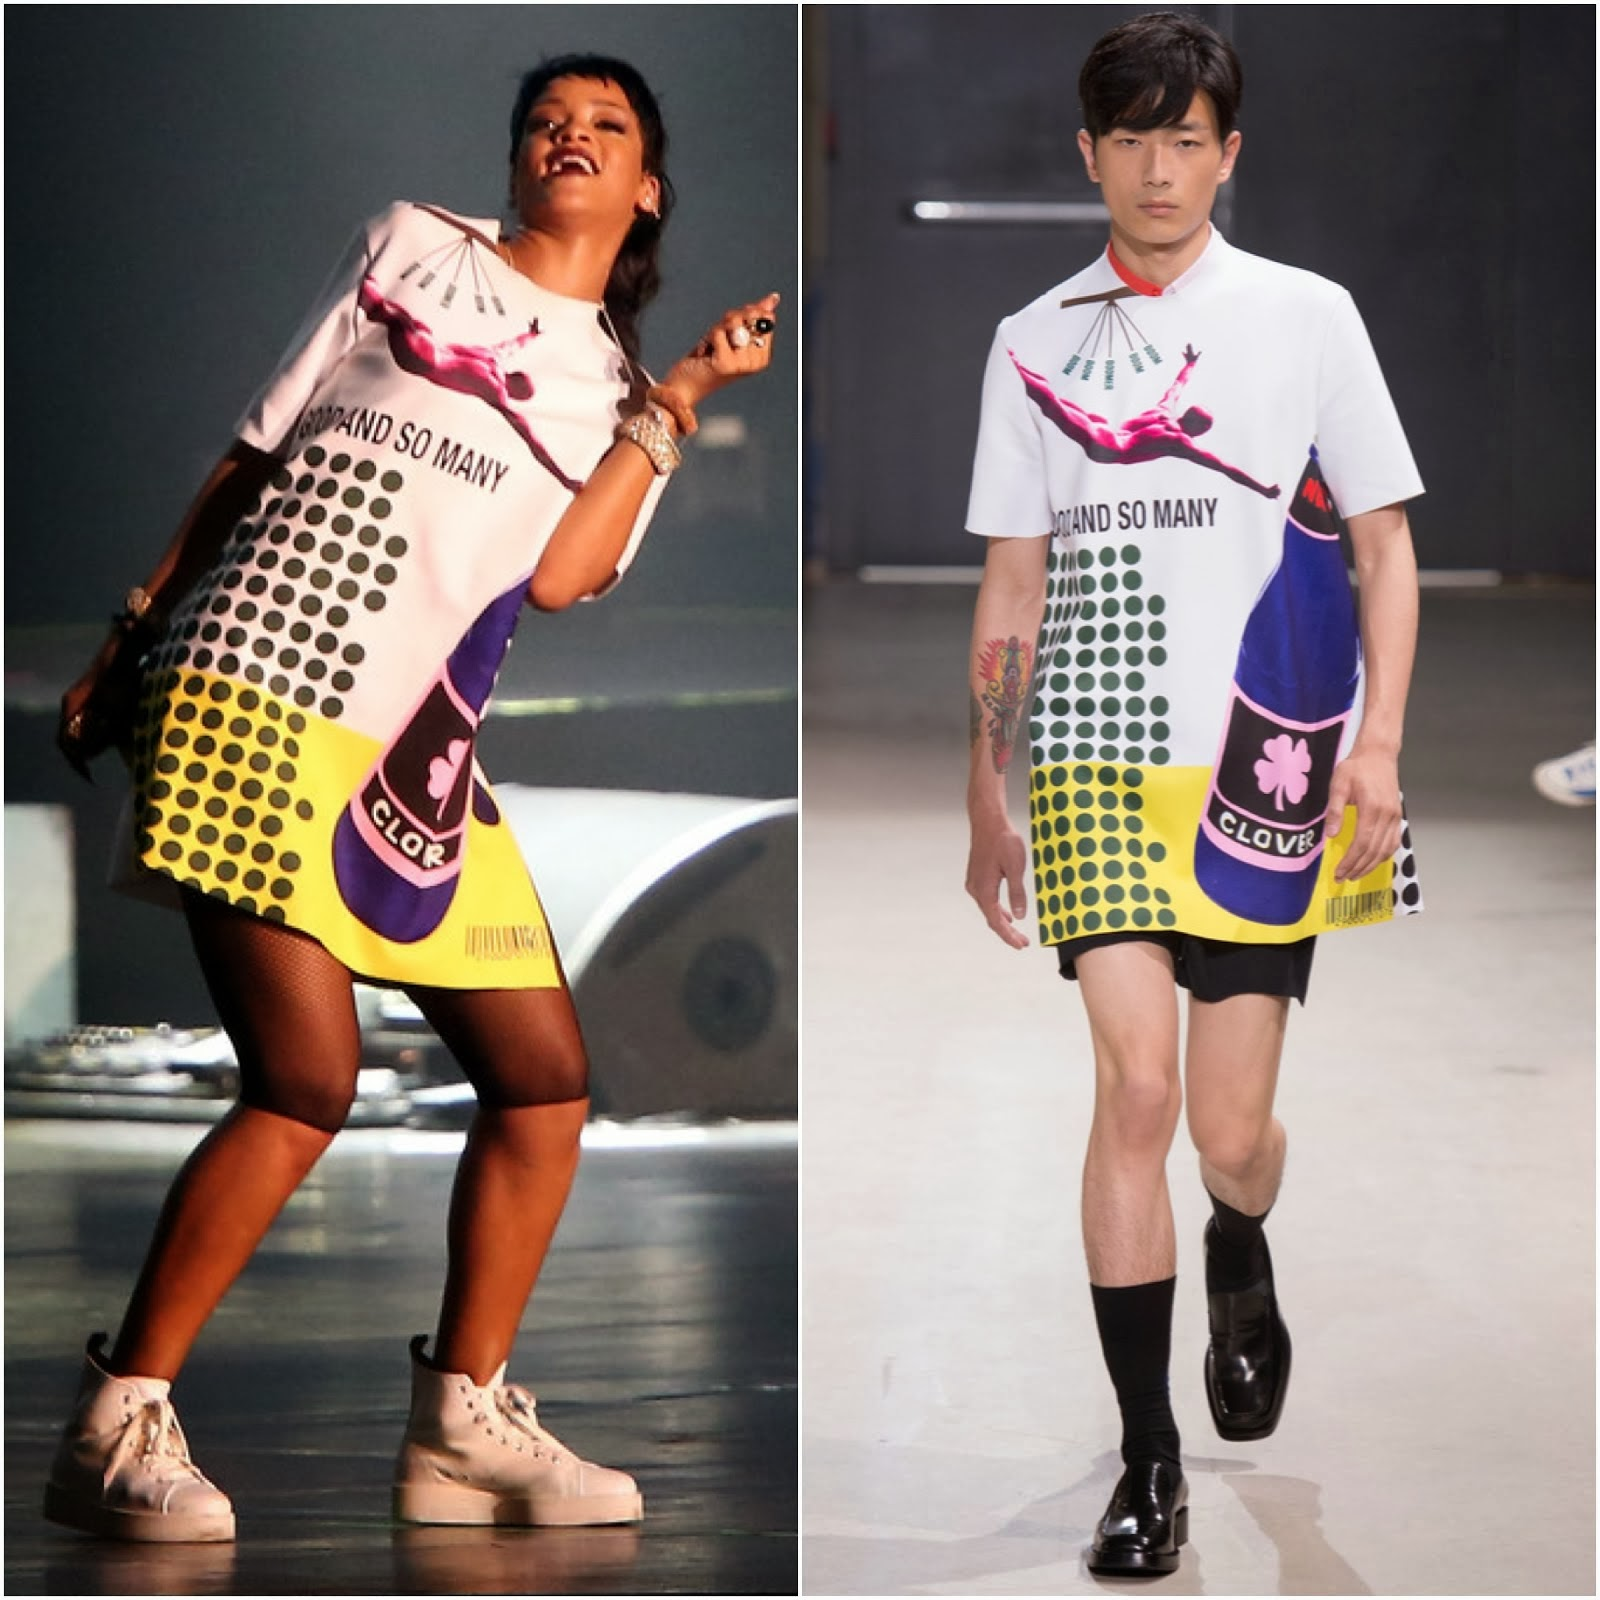 00O00 Menswear Blog Rihanna in Raf Simons - Singapore F1 Grand Prix 2013